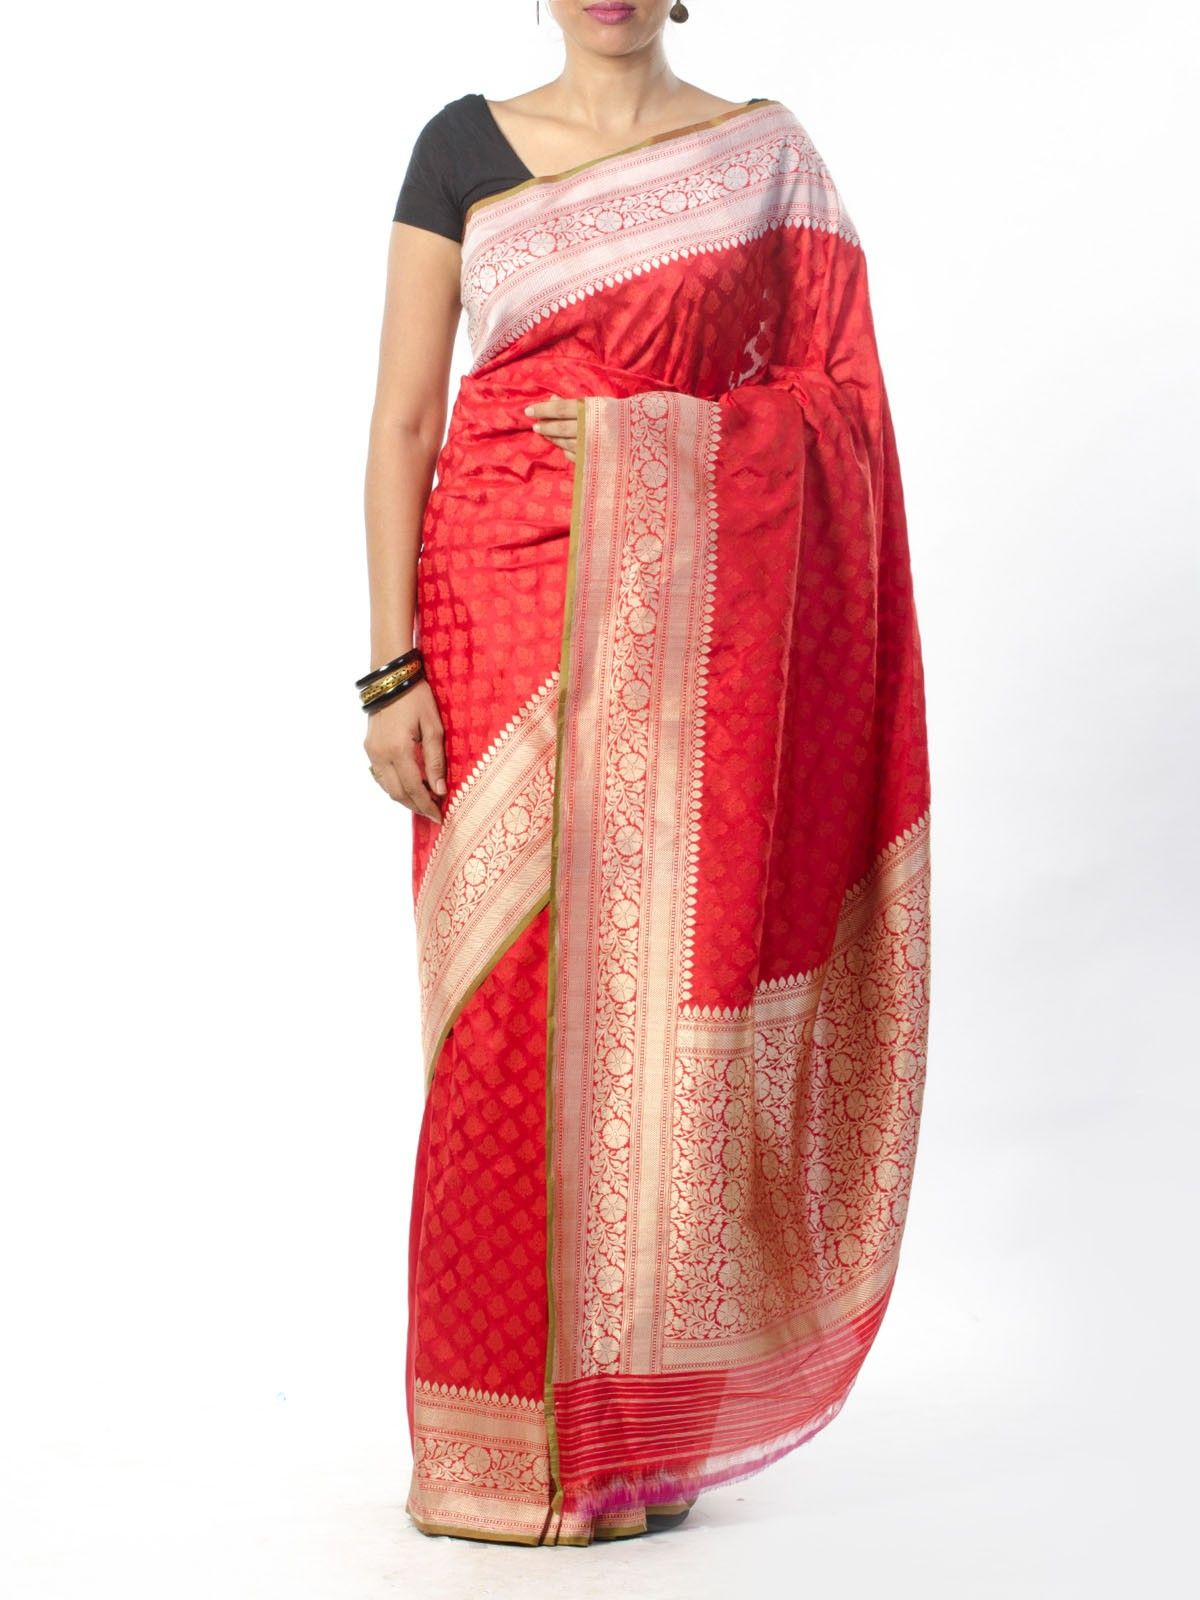 Red Banarasi Saree with Zari Border